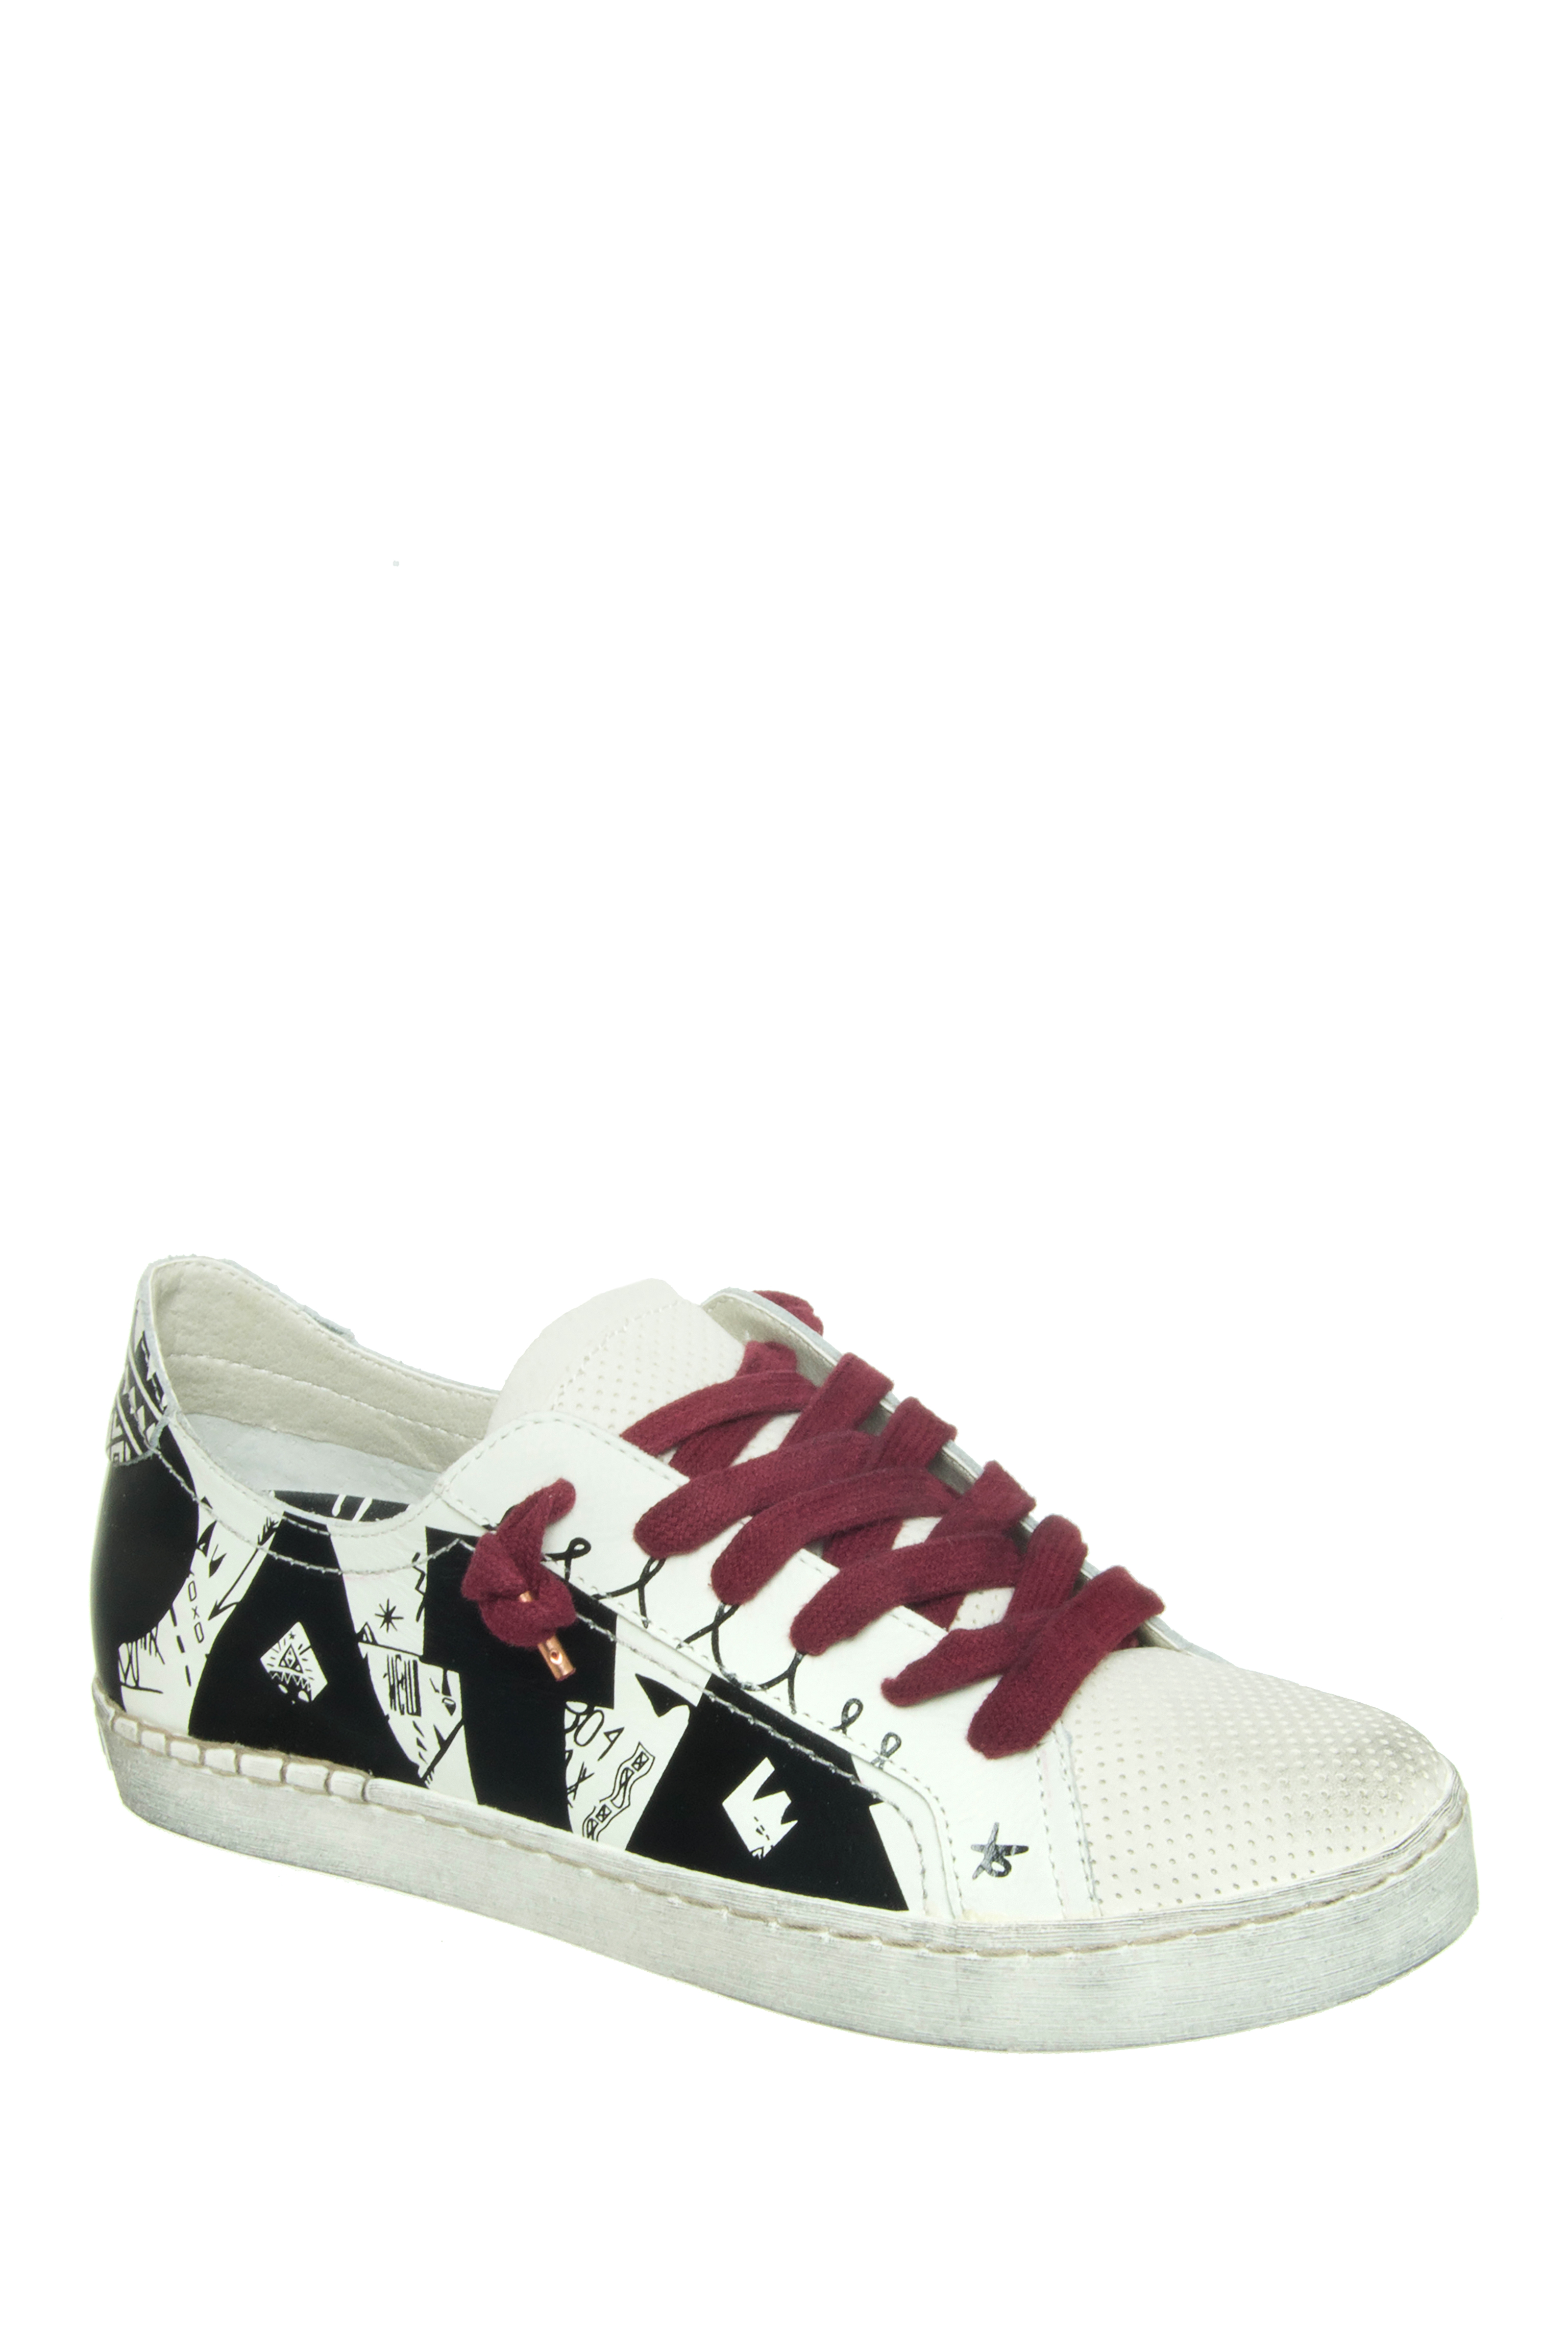 Dolce Vita Z-Pata Lace Up Sneakers - White